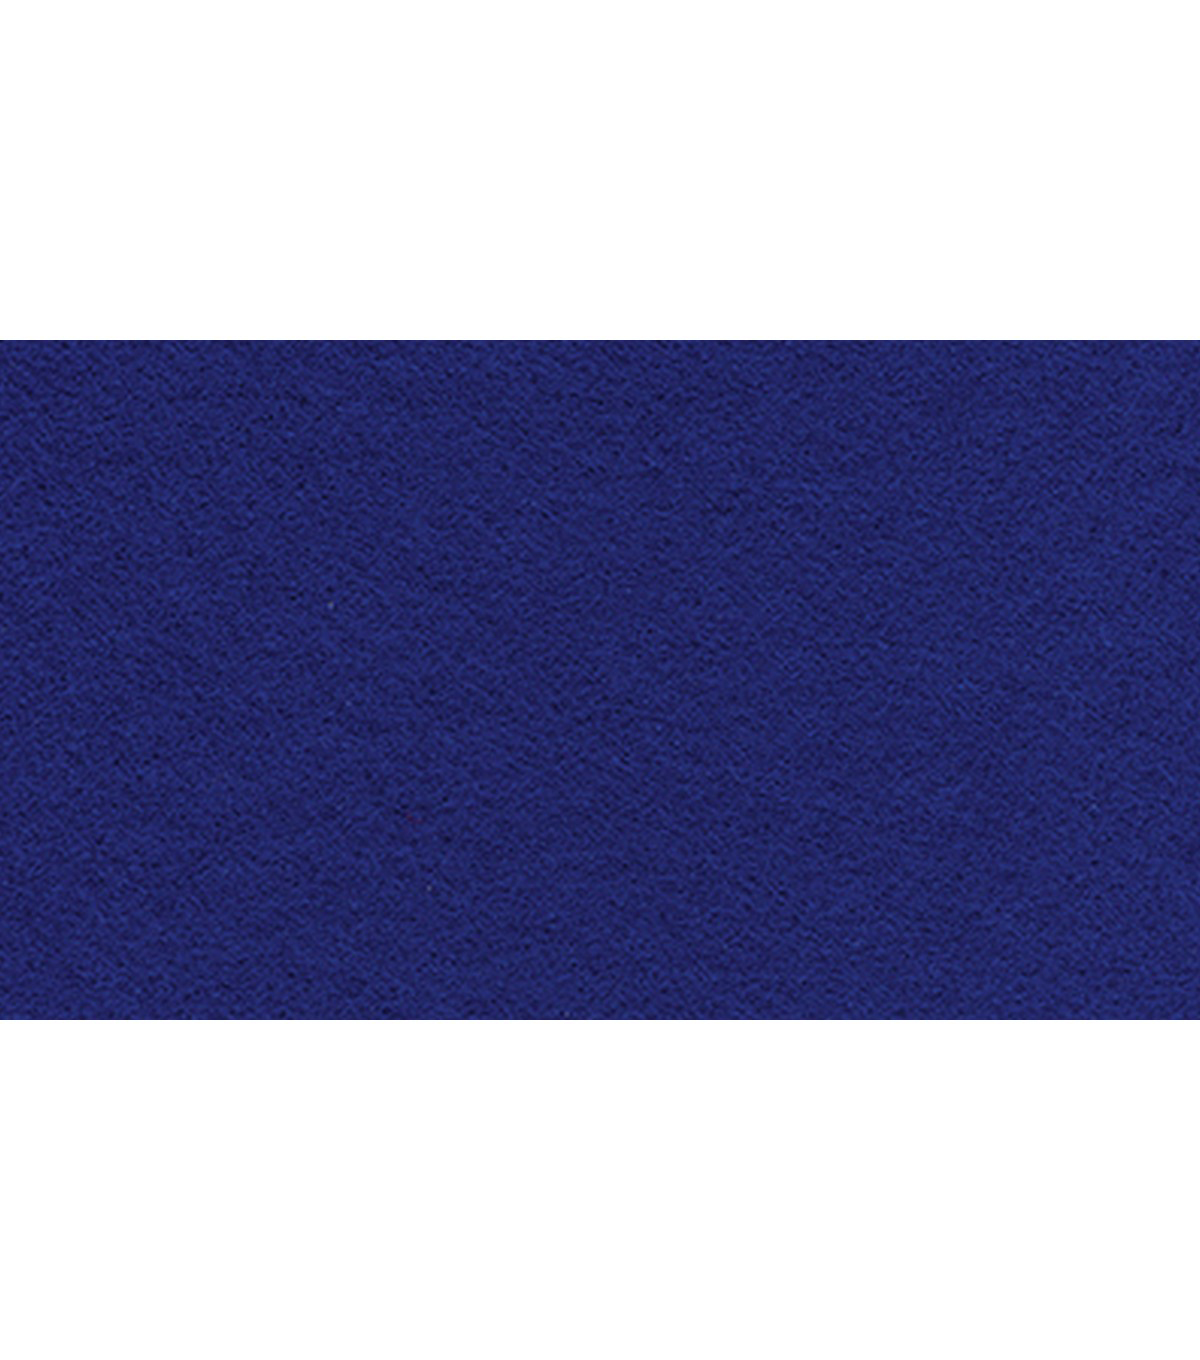 9x12 Stickrz Royal Blue, Royal Blue